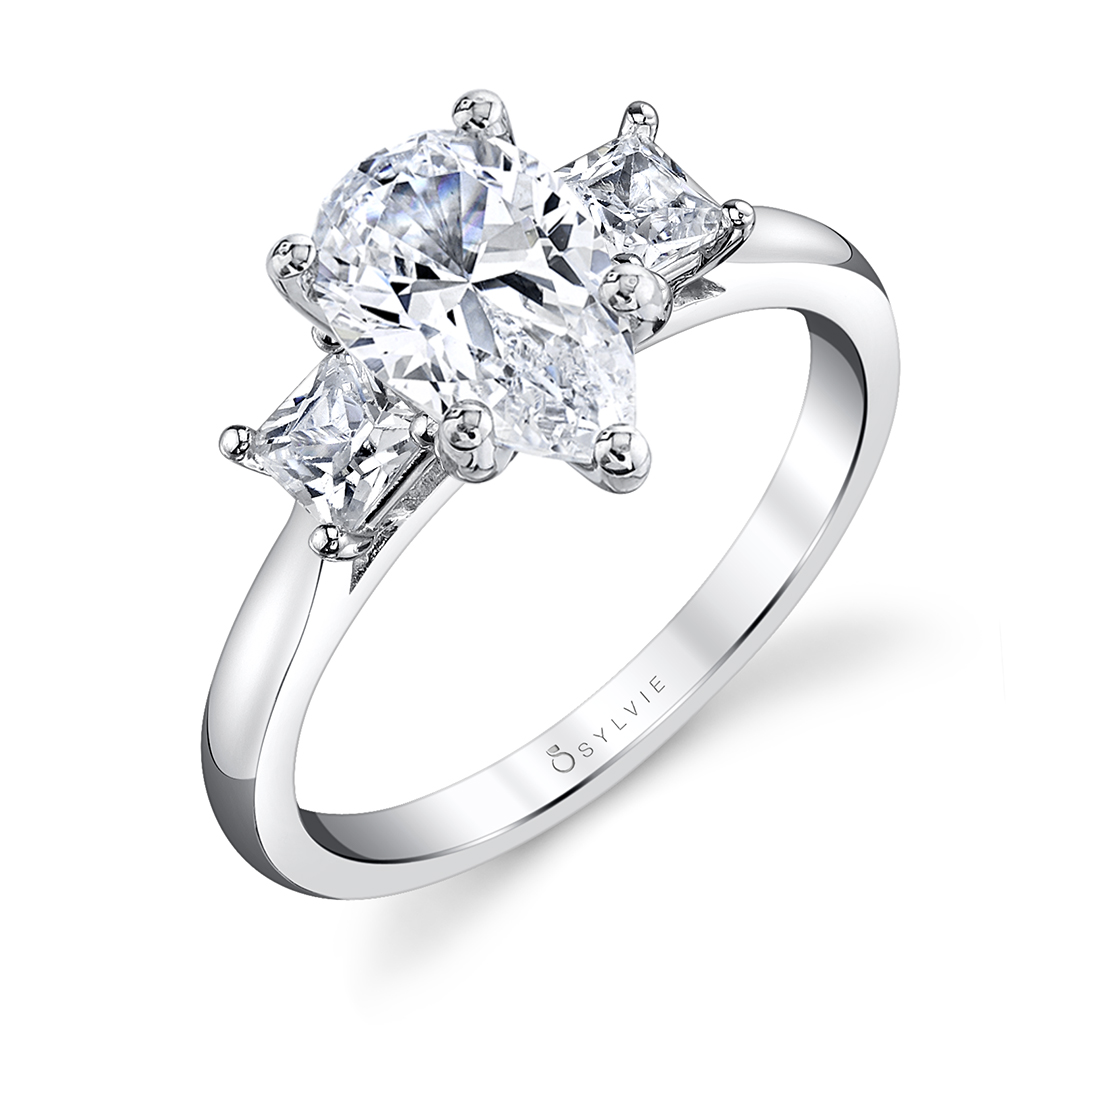 pear cut ring with princess cut side stones in white gold